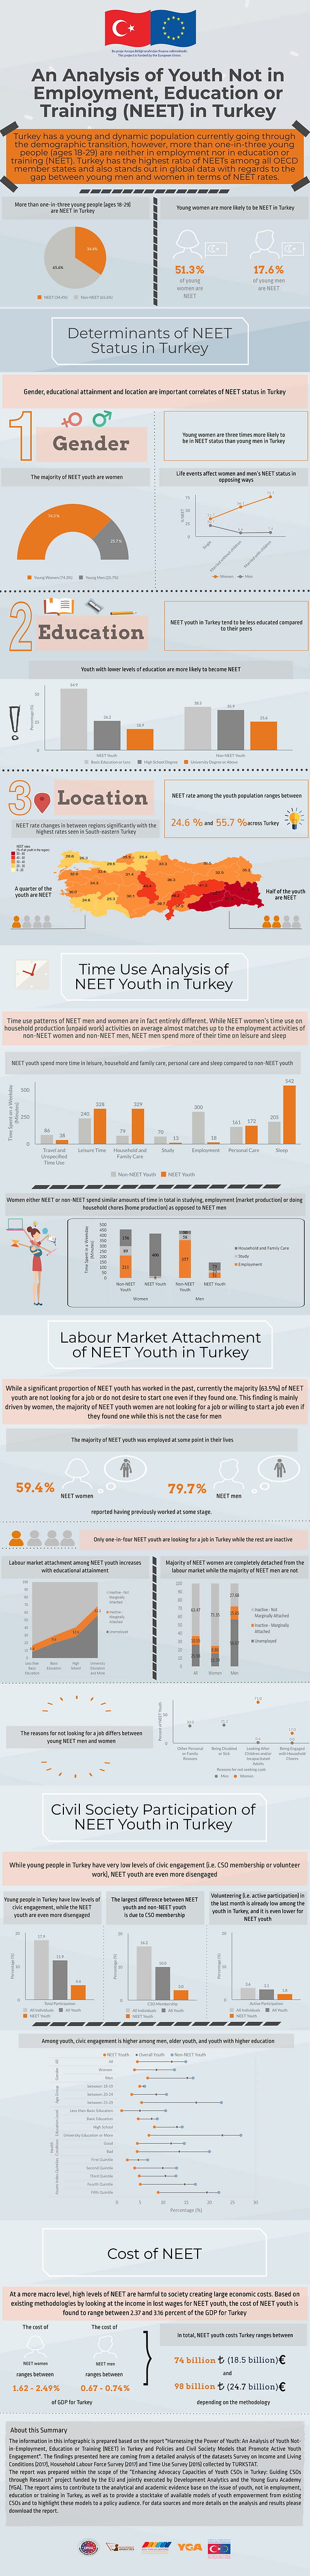 NEET Infographic 30102020.png